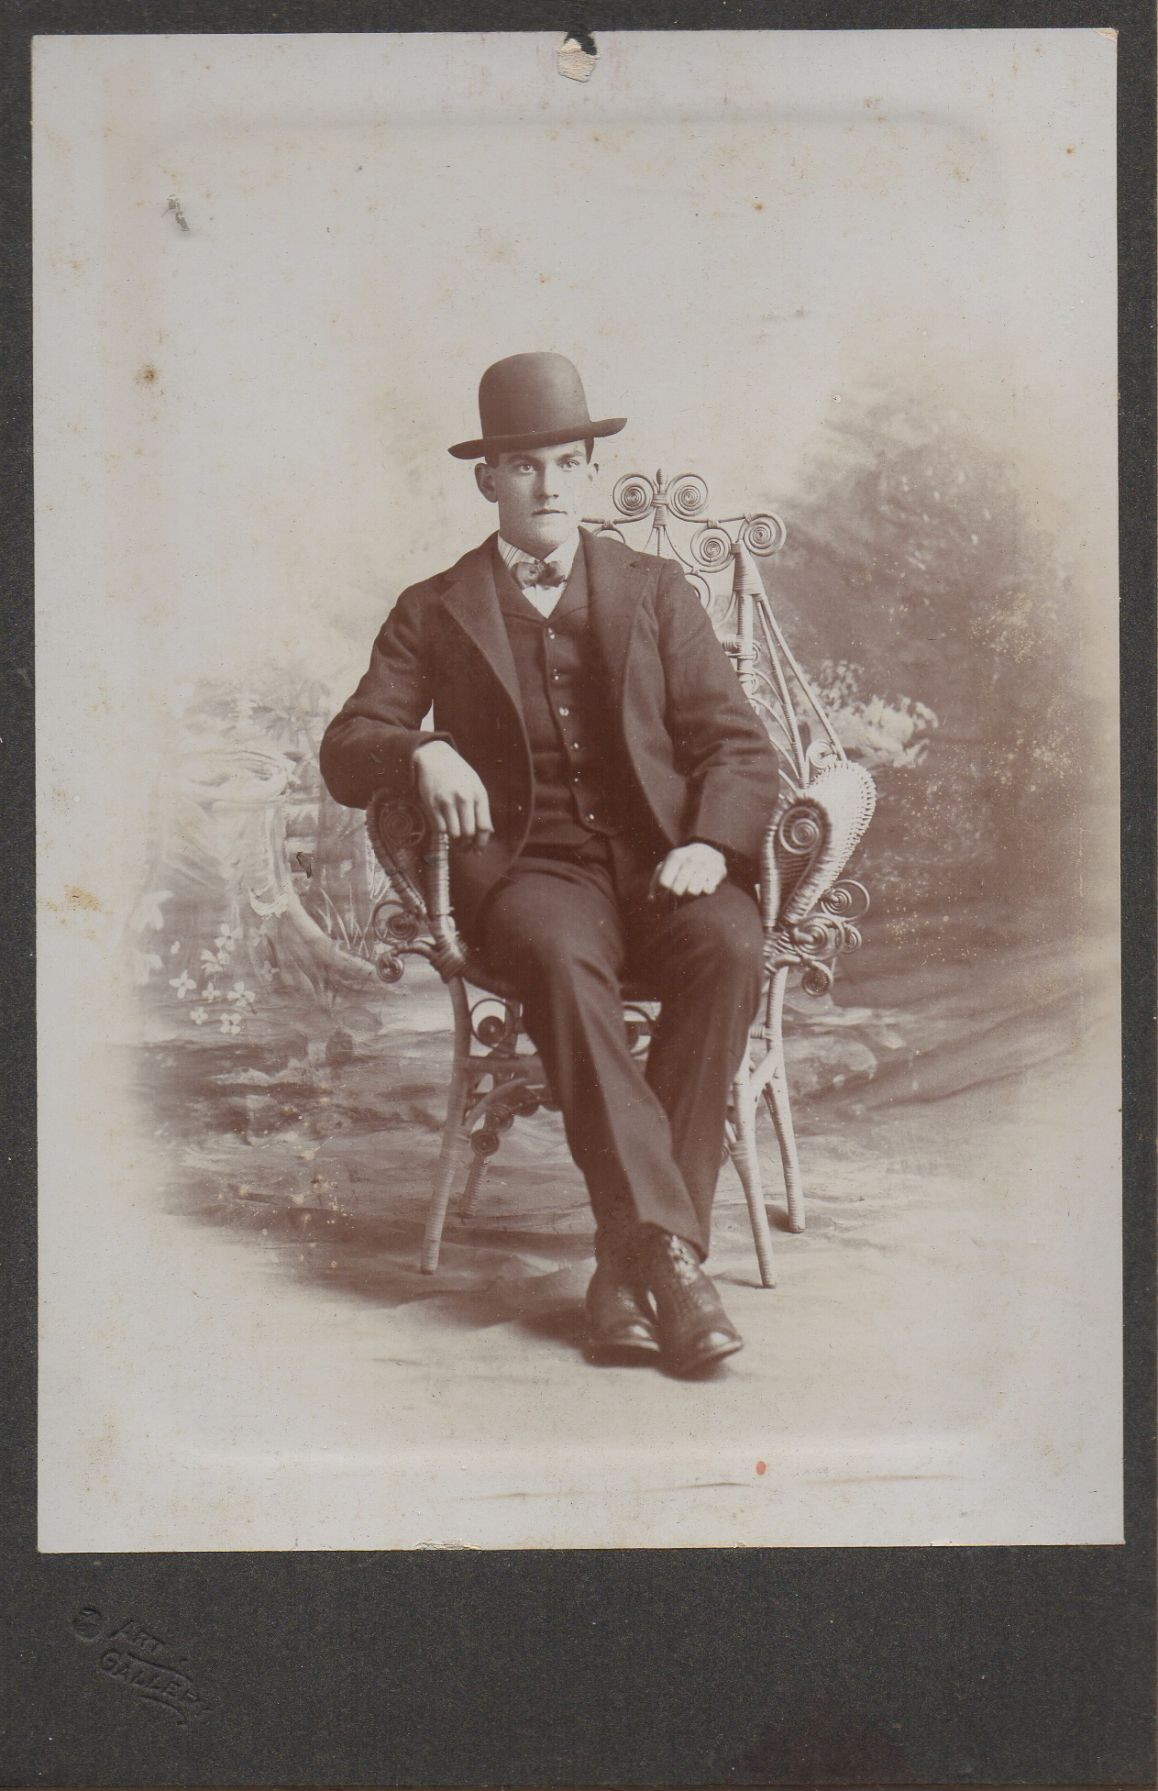 Photo of dapper young man from 1800s